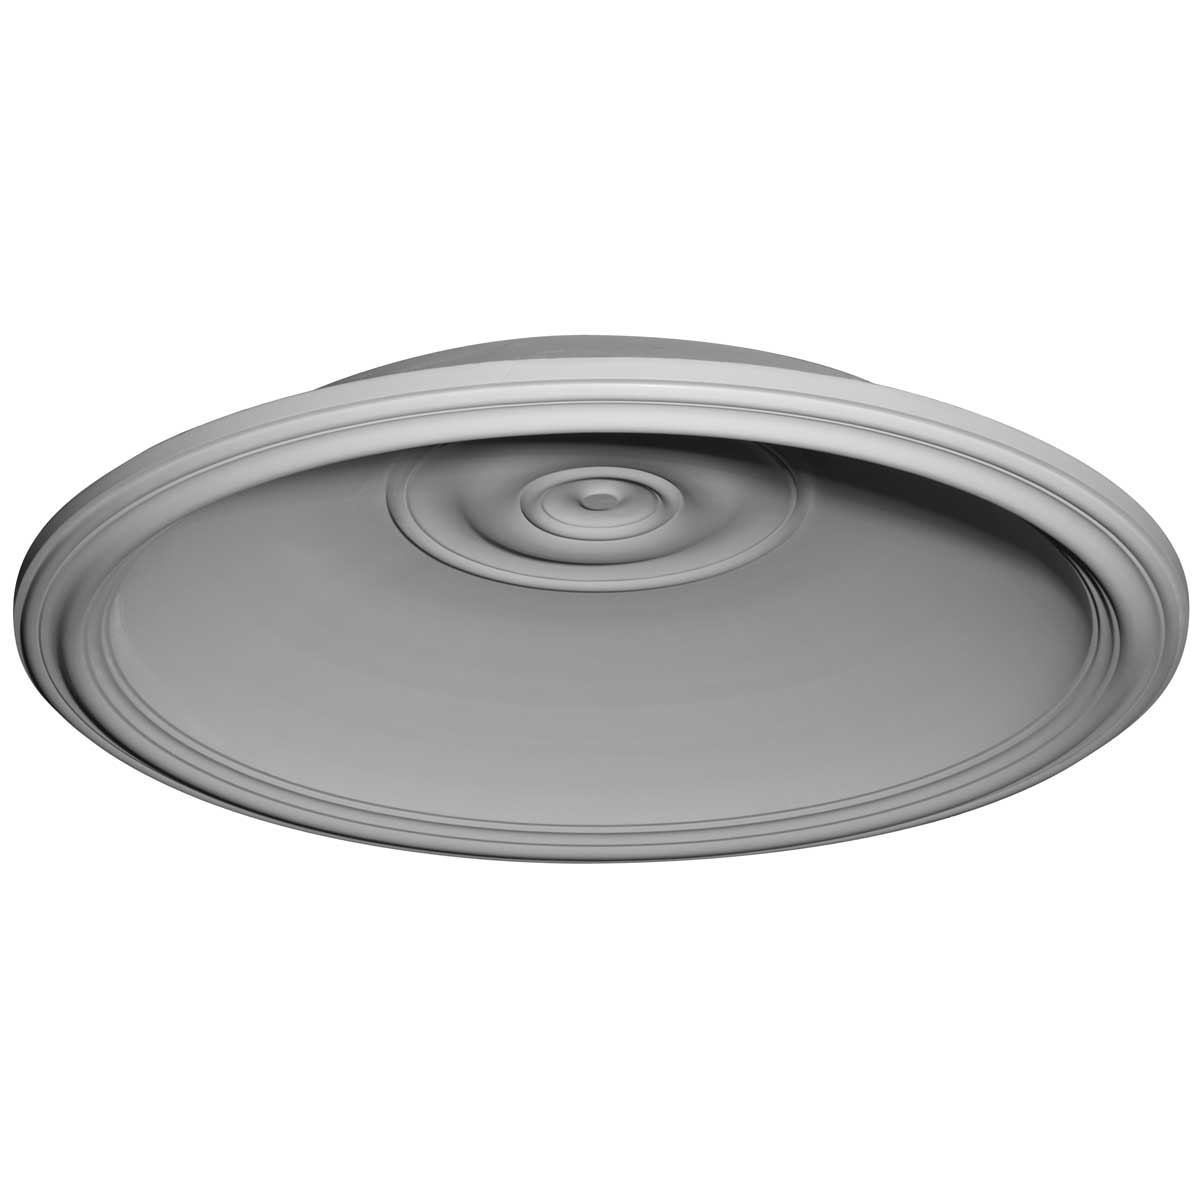 """DOME32TR 36-5/8""""OD x 32-5/8""""ID x 6-1/2""""D Traditional Recessed Mount Ceiling Dome (32-5/8""""Diameter x 6""""D Rough Opening)"""